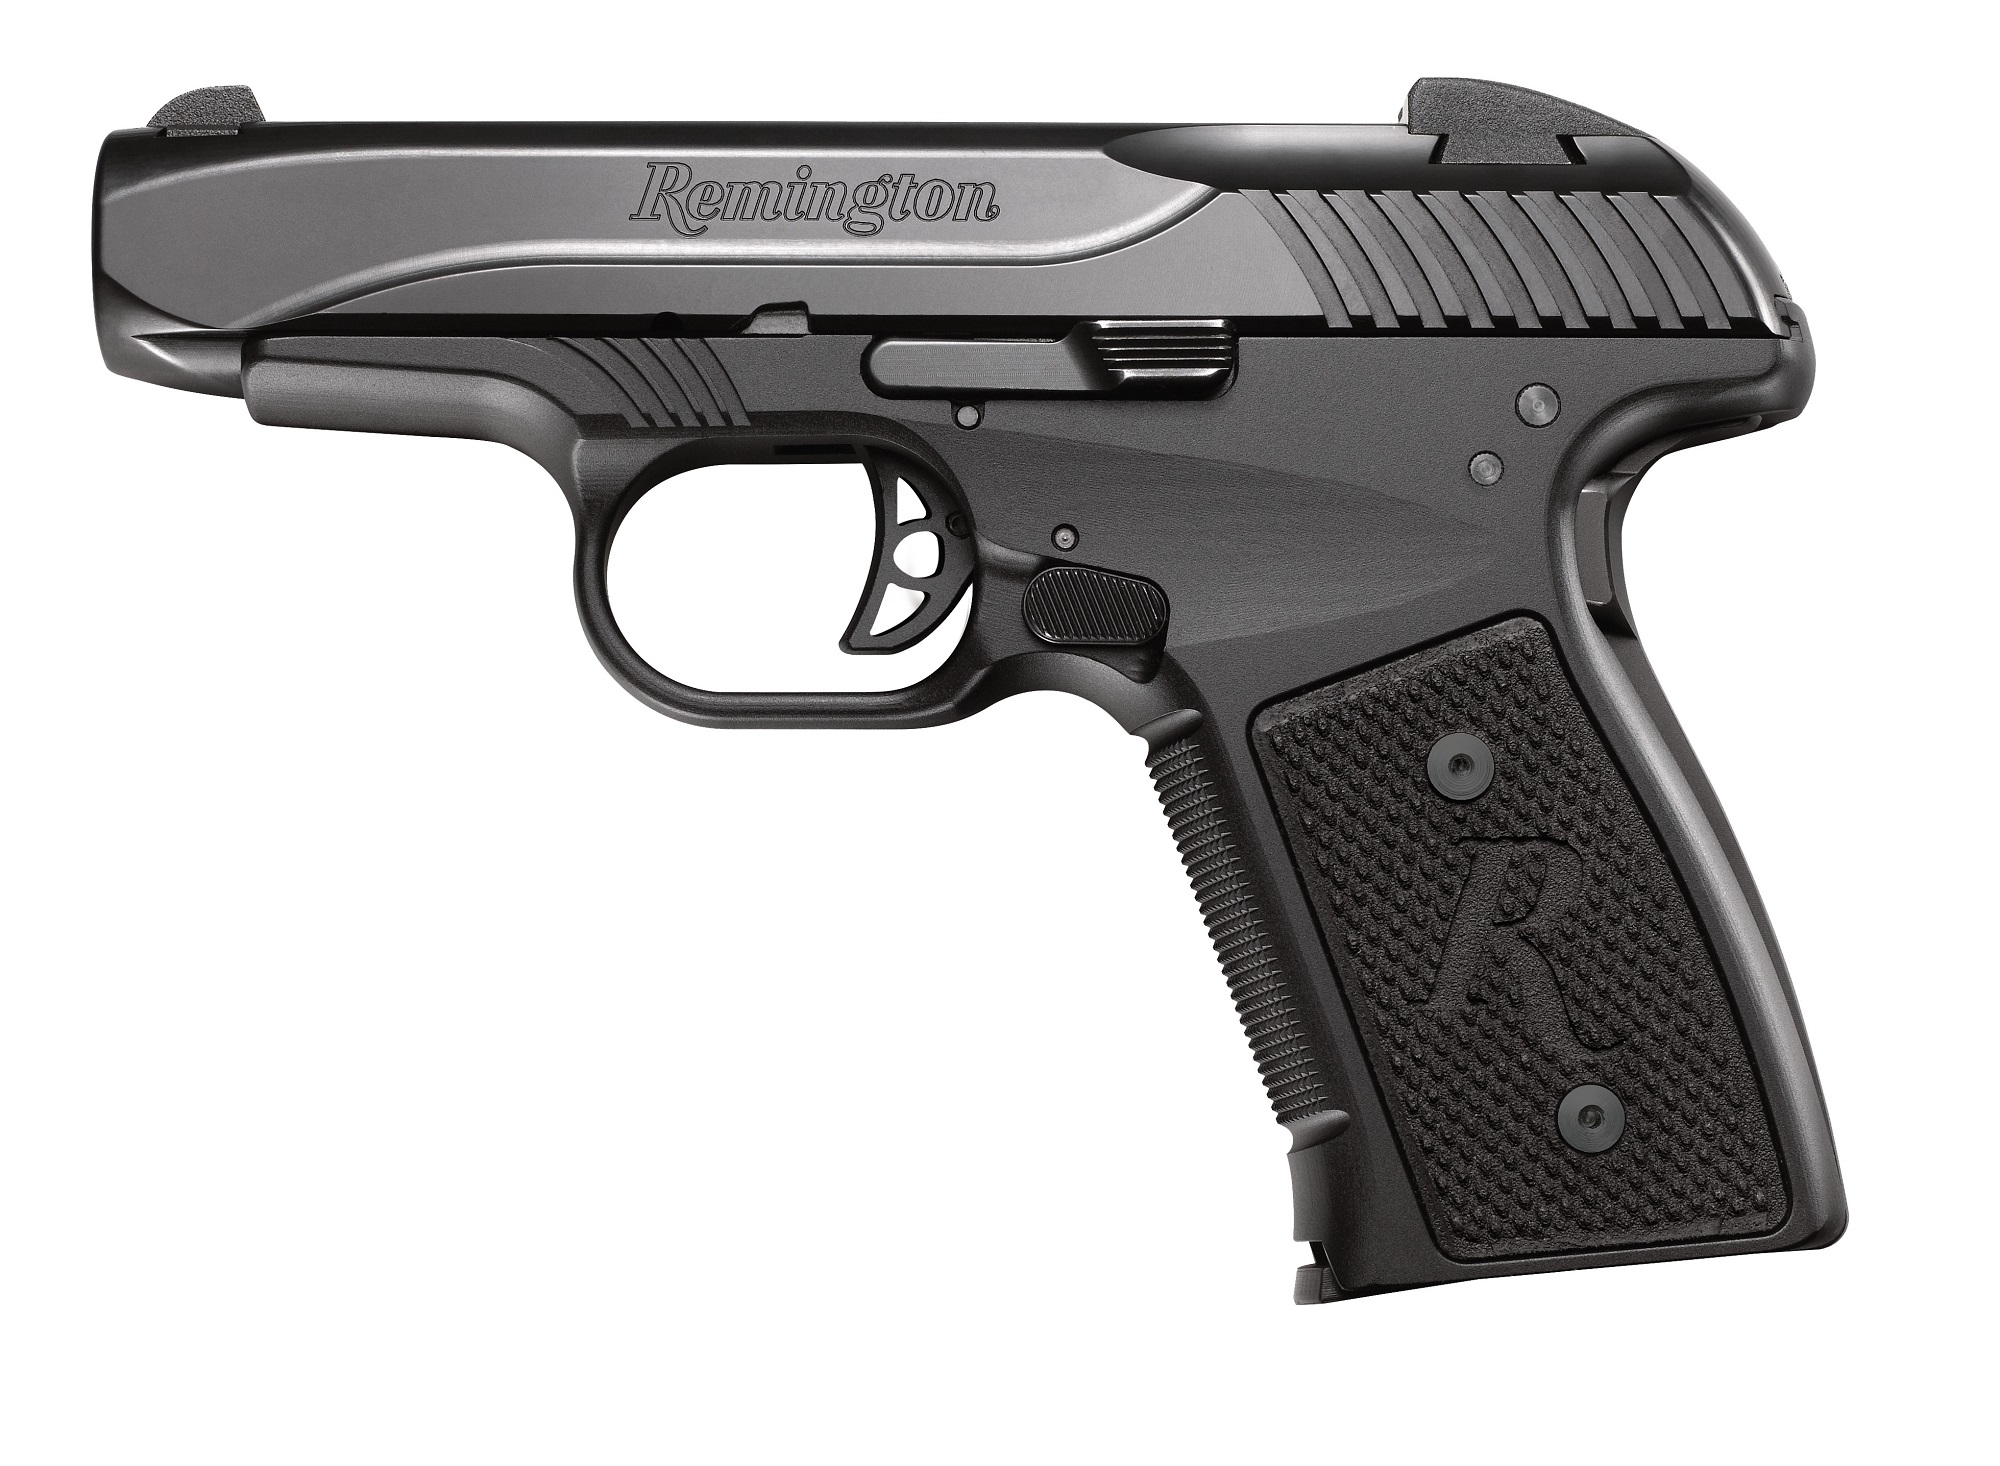 Remington R51 - Pistols - Pistols - News - all4shooters.com